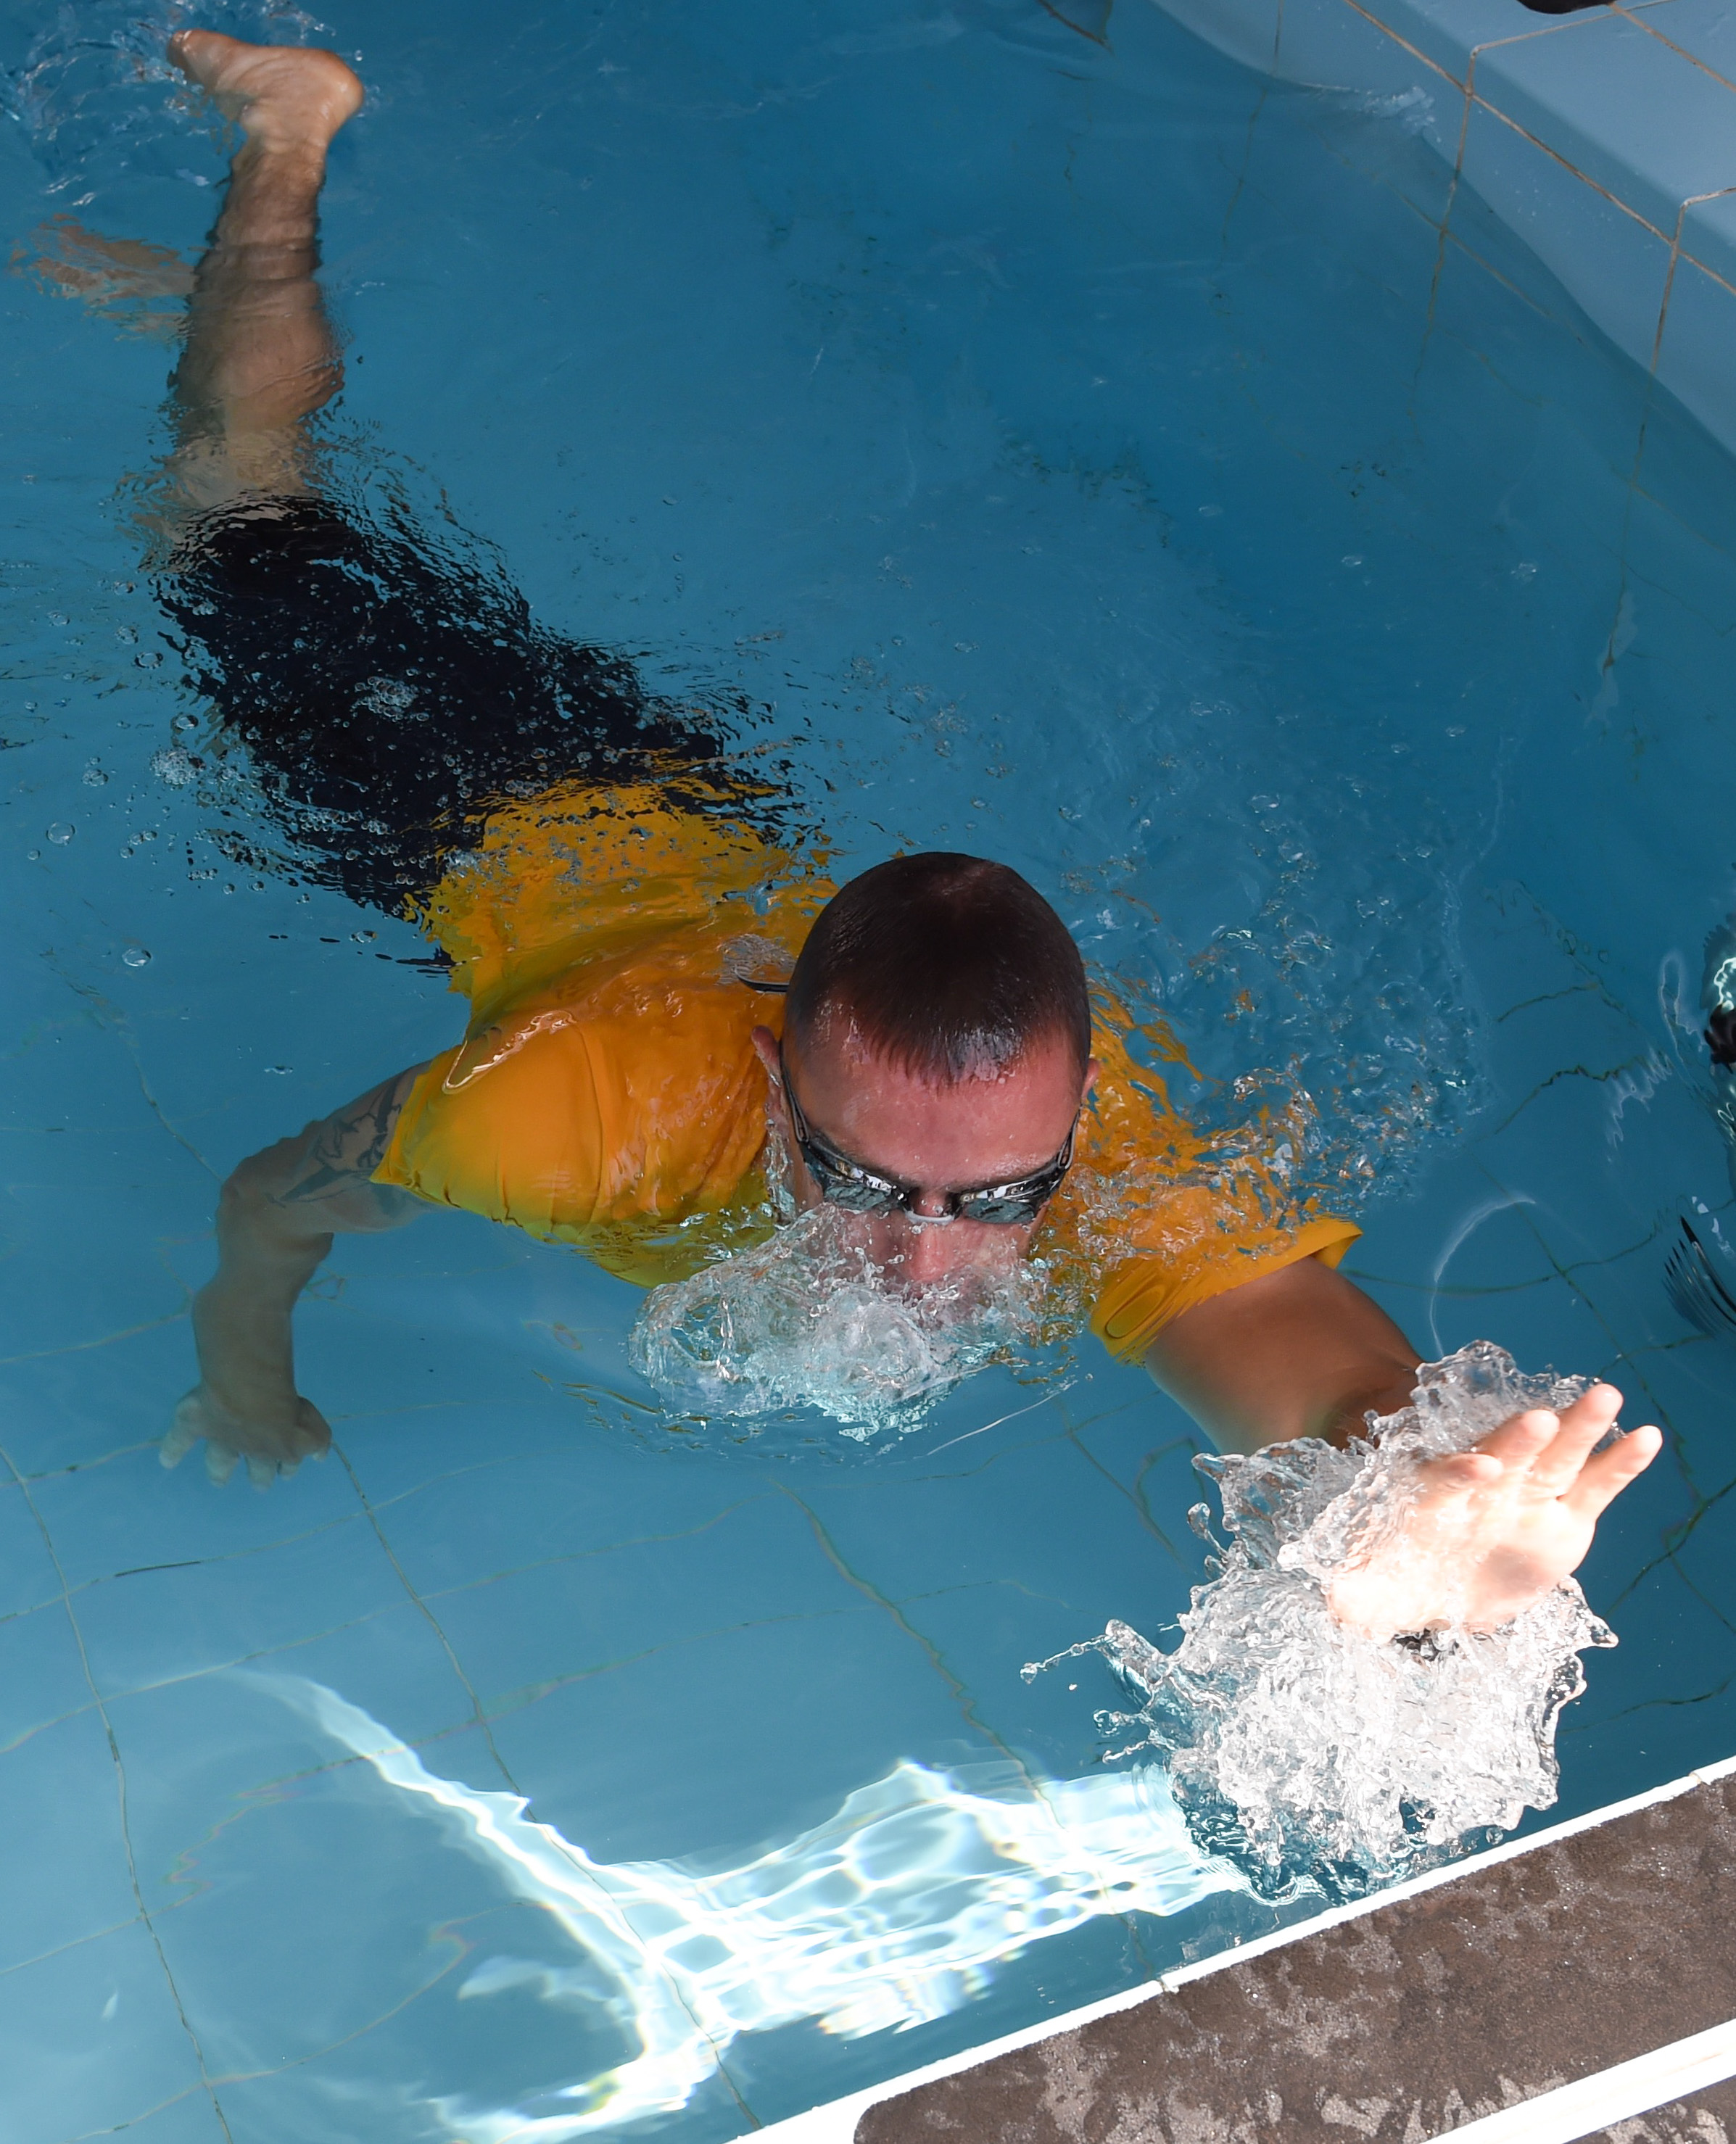 U.S. Navy Petty Officer 2nd Class Adam Agosti, Combined Joint Task Force-Horn of Africa Seabees, reaches for the wall during the 240-meter Navy swim test for the Joint Warrior Competition, Nov. 19, 2016, Camp Lemonnier, Djibouti. The swim test occurred after the joint physical fitness test and the joint combat fitness test. These two events were comprised of pull-ups, push-ups, sit-ups, two-mile run, five-mile ruck march, a low crawl, tourniquet application, buddy carry, radio medical evacuation, grenade toss, tire flip, ammo can carry, dead lift, and rope climb. (U.S. Air National Guard photo by Staff Sgt. Penny Snoozy)